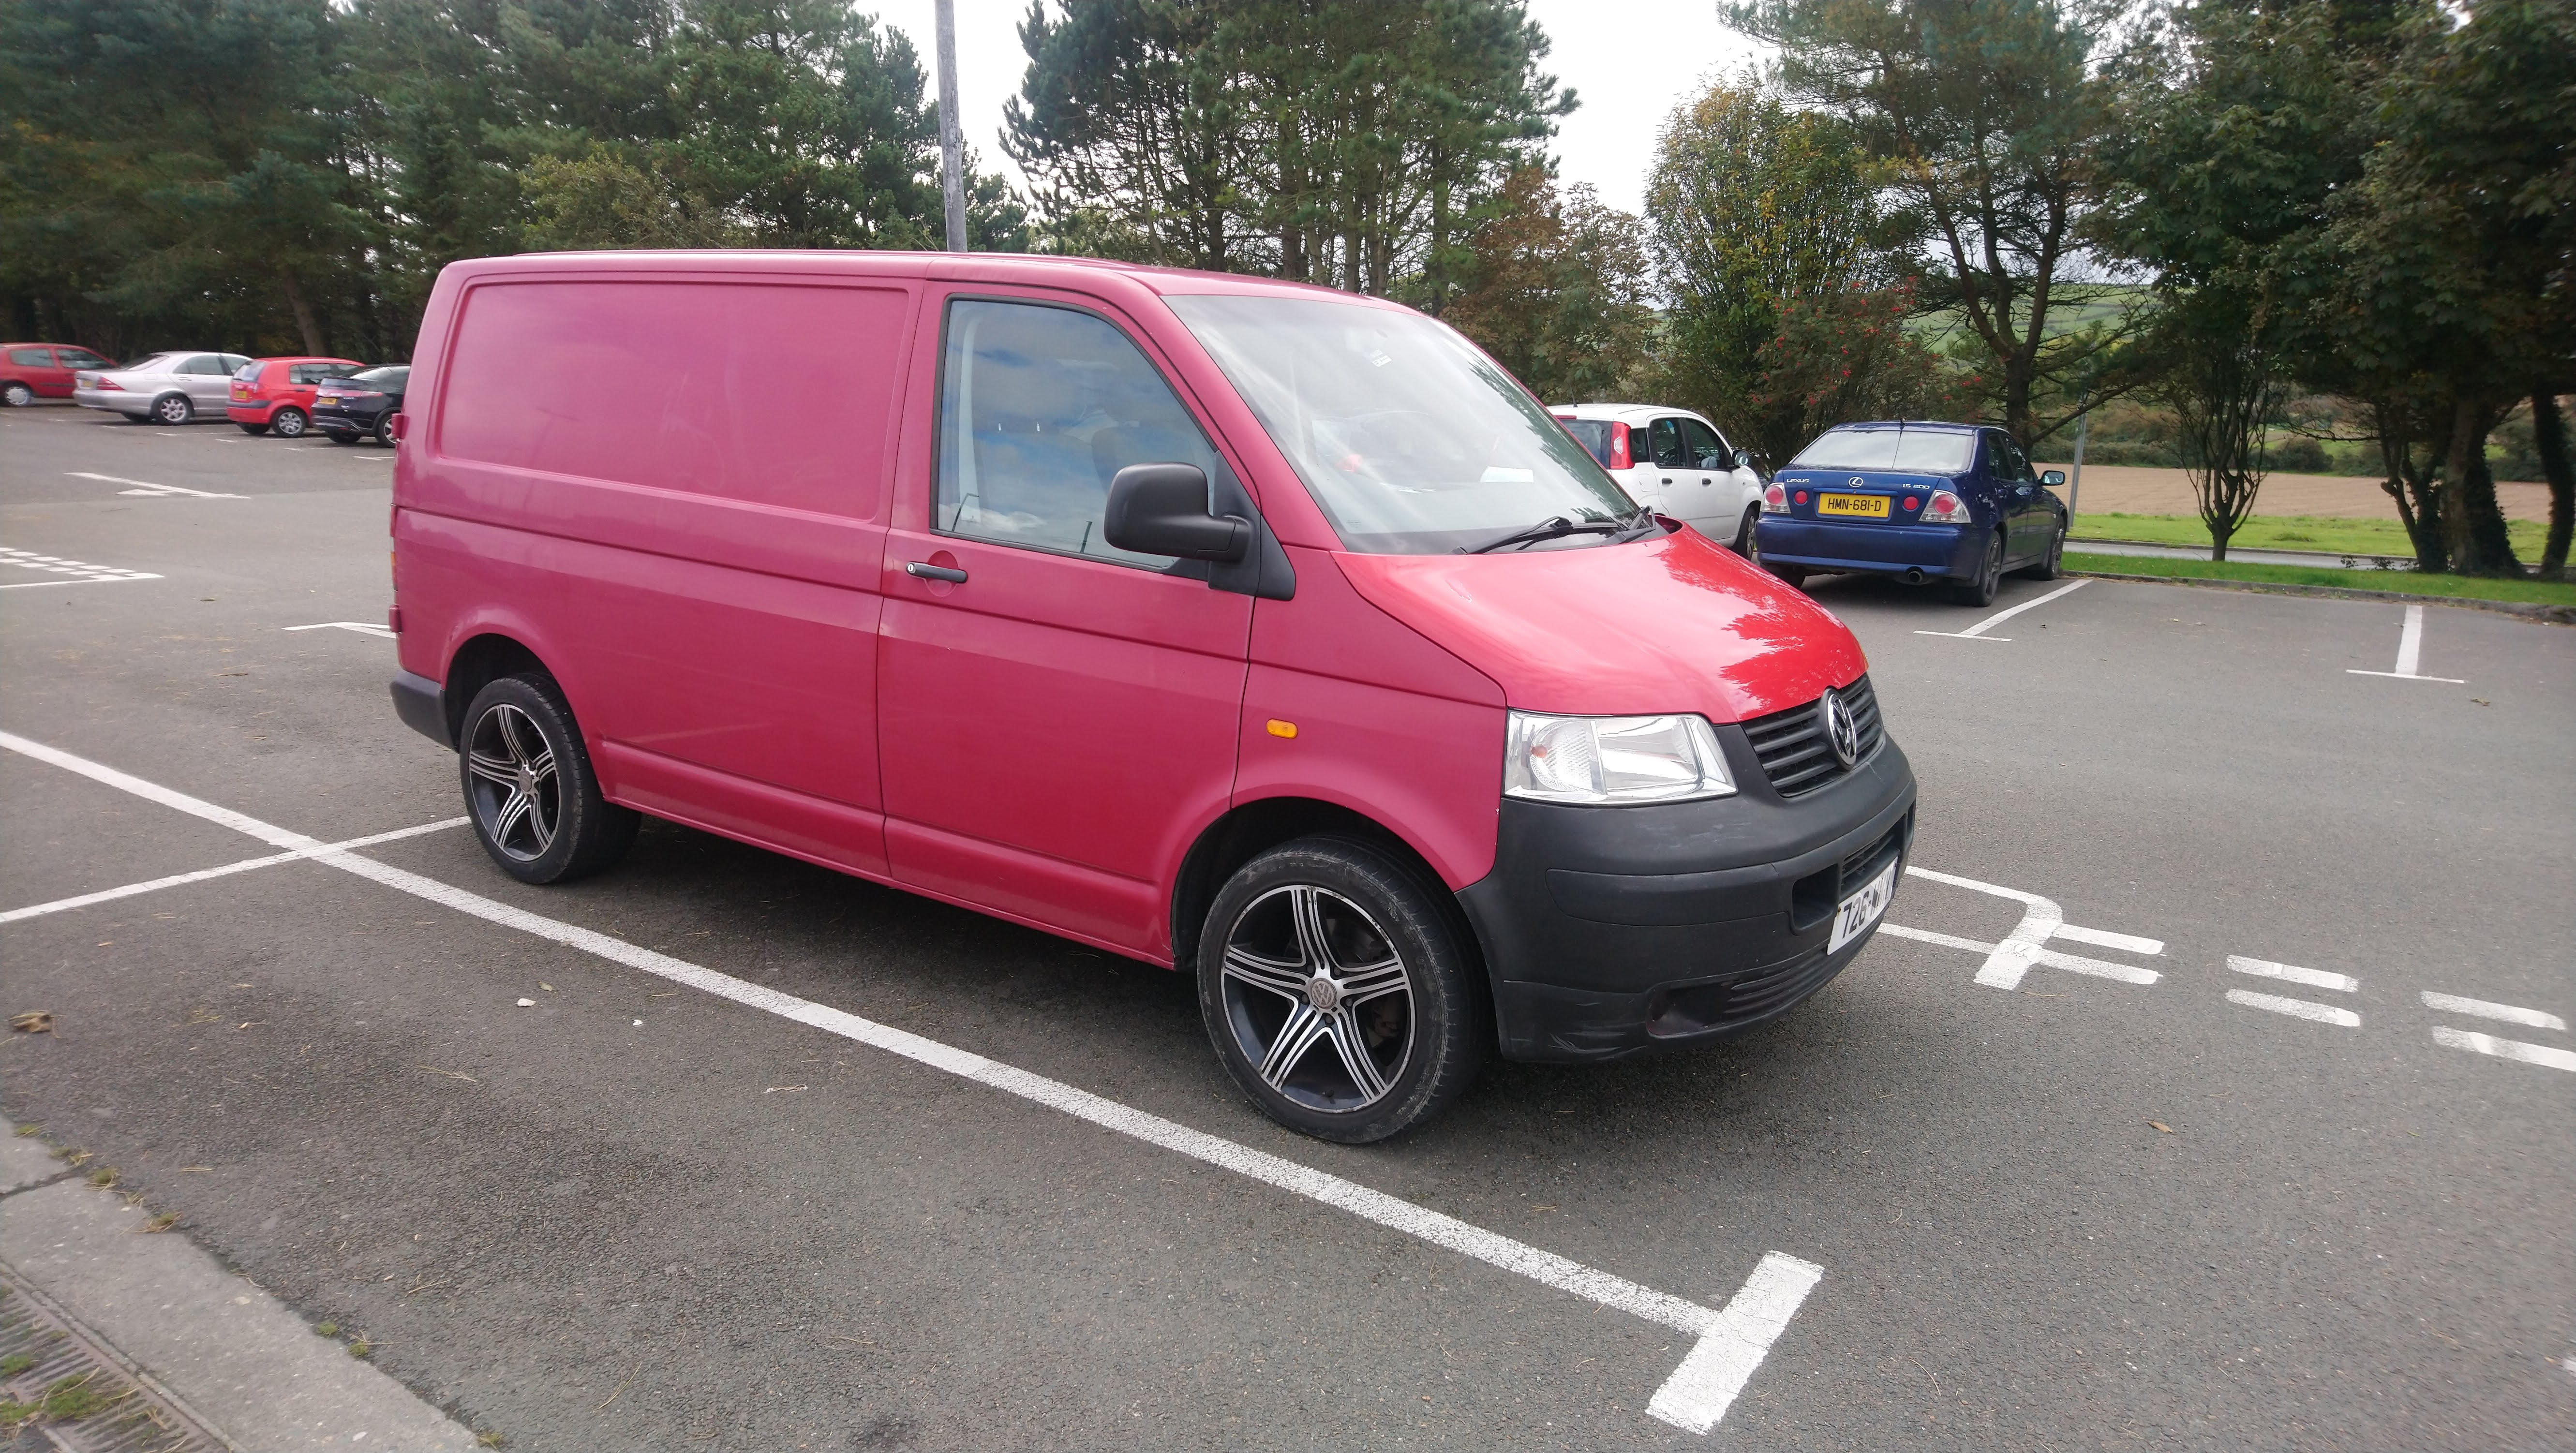 VW Transporter 1.9 from private